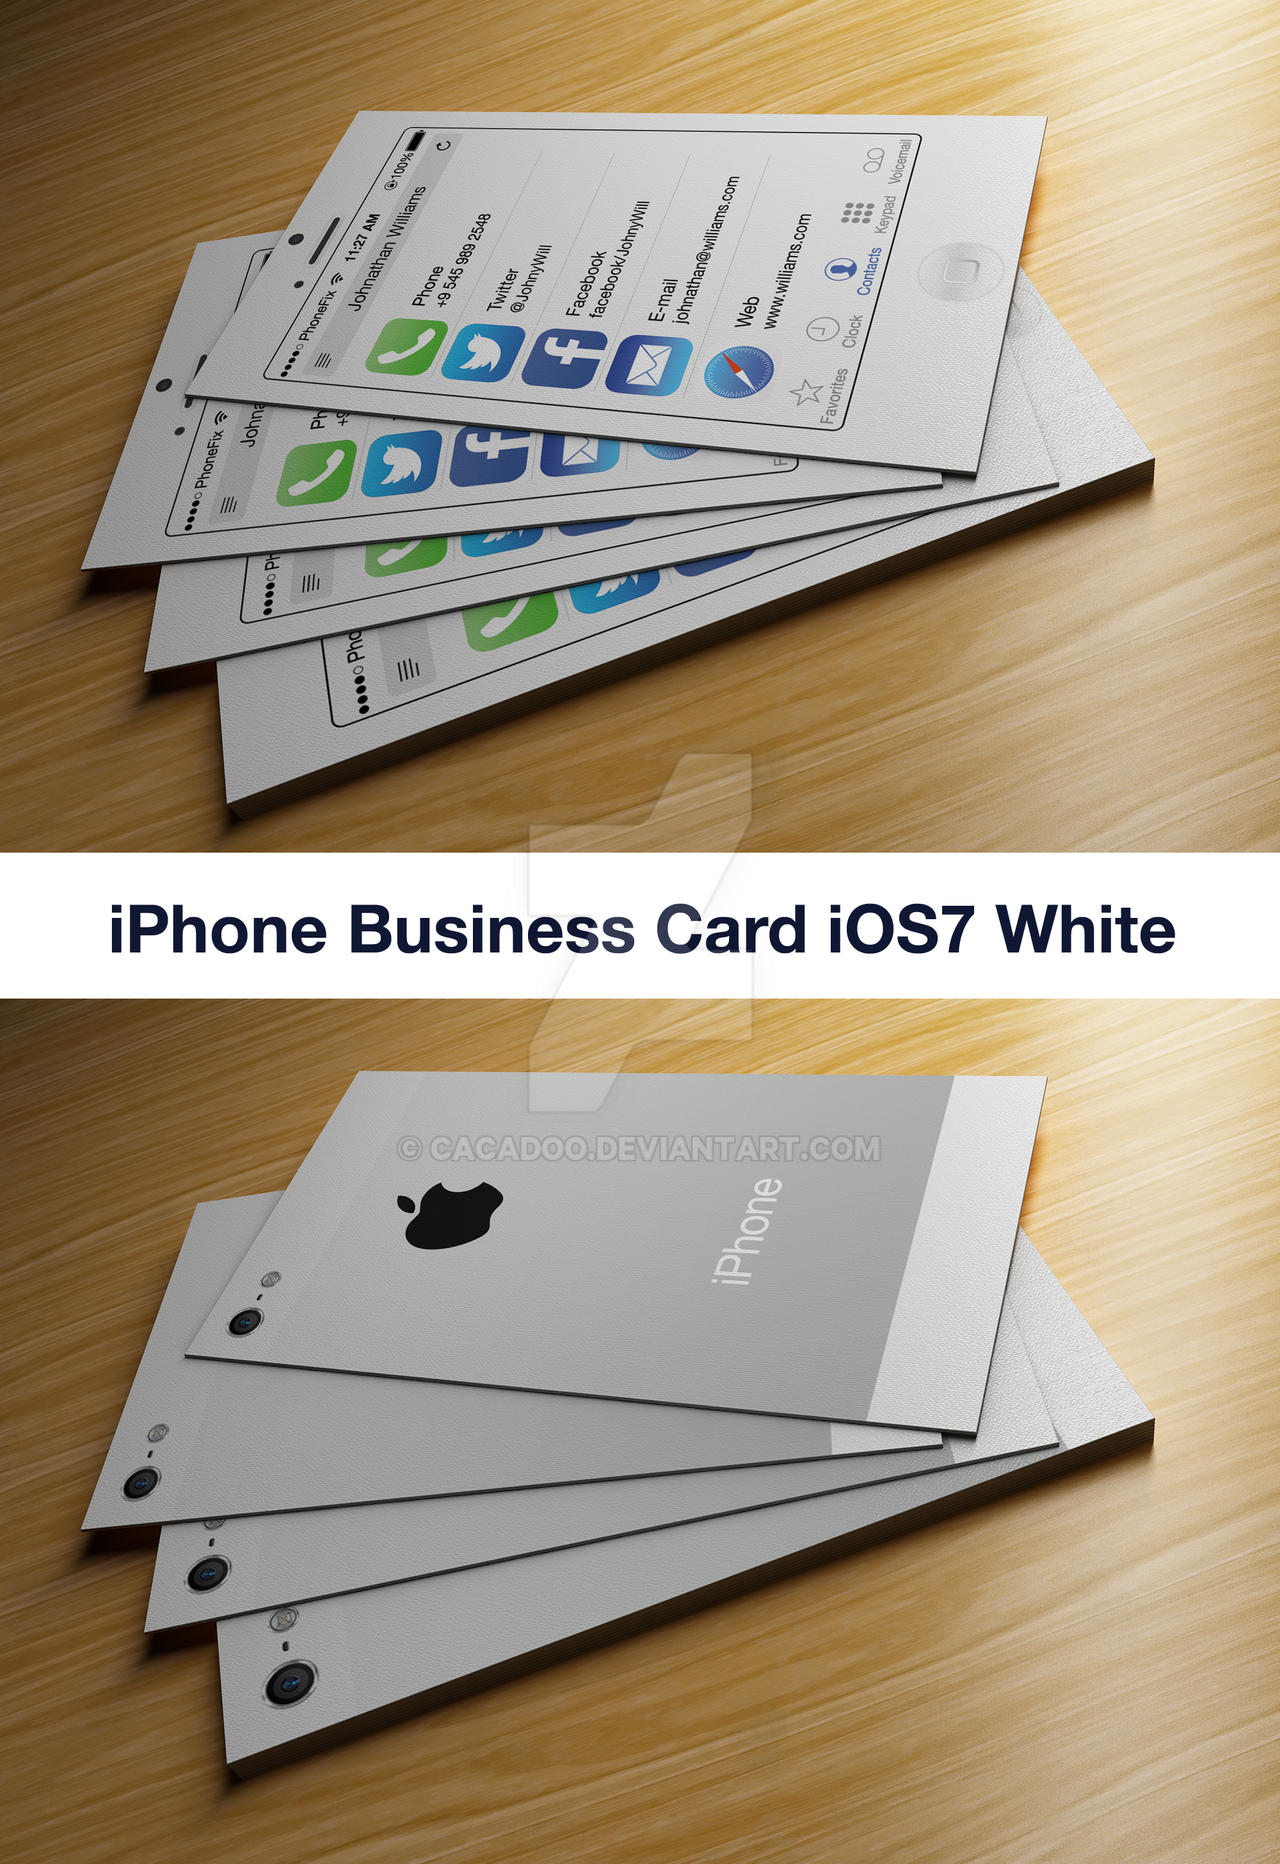 Iphone business card ios7 white by cacadoo on deviantart iphone business card ios7 white by cacadoo reheart Gallery